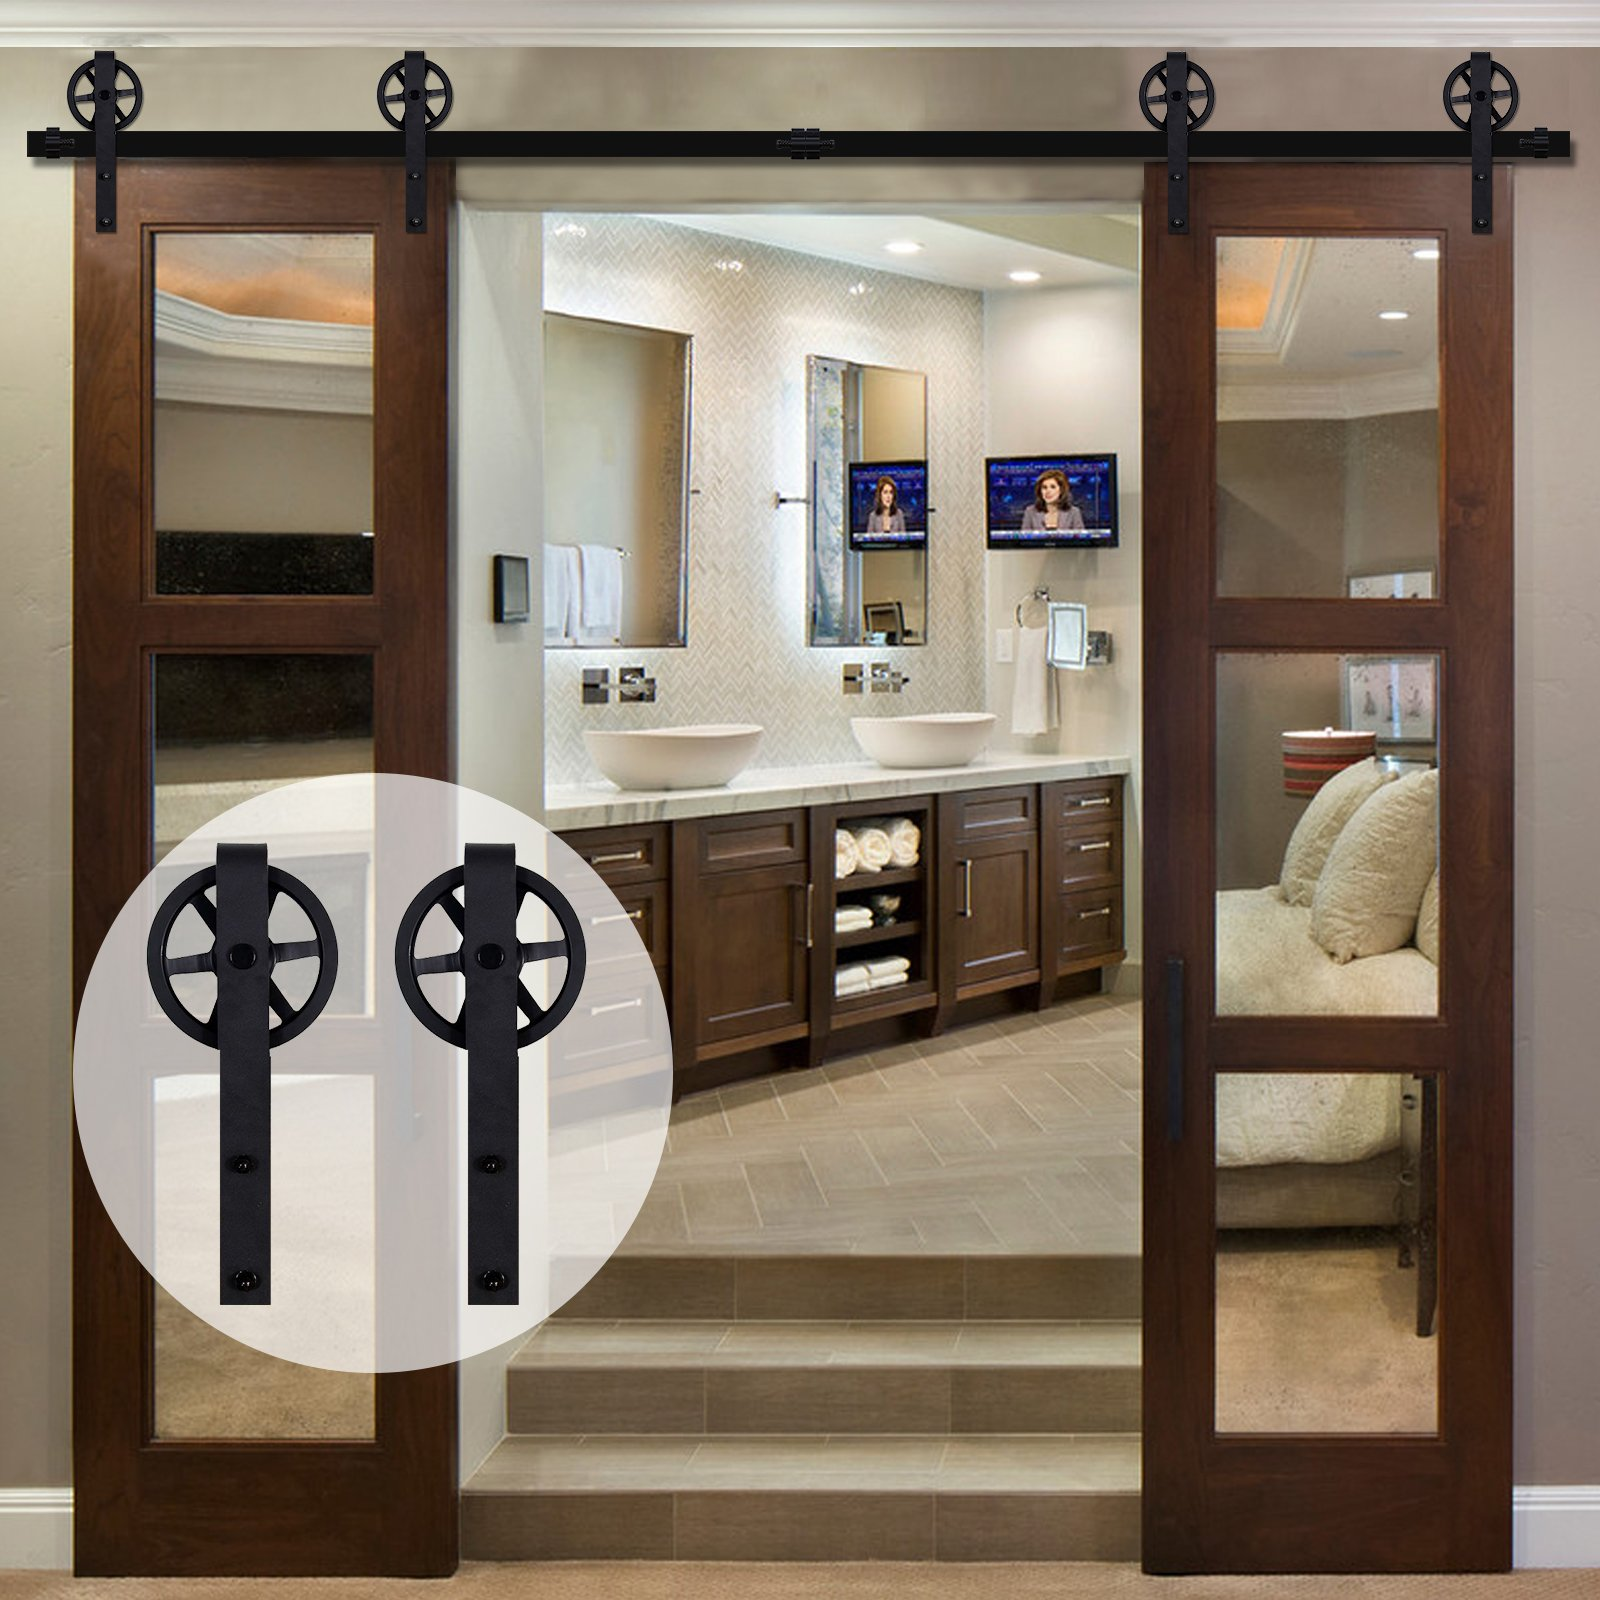 CCJH American Country Flat Style Steel Sliding Barn Door Hardware with Big Rollers for Double Door Black (14.5FT)